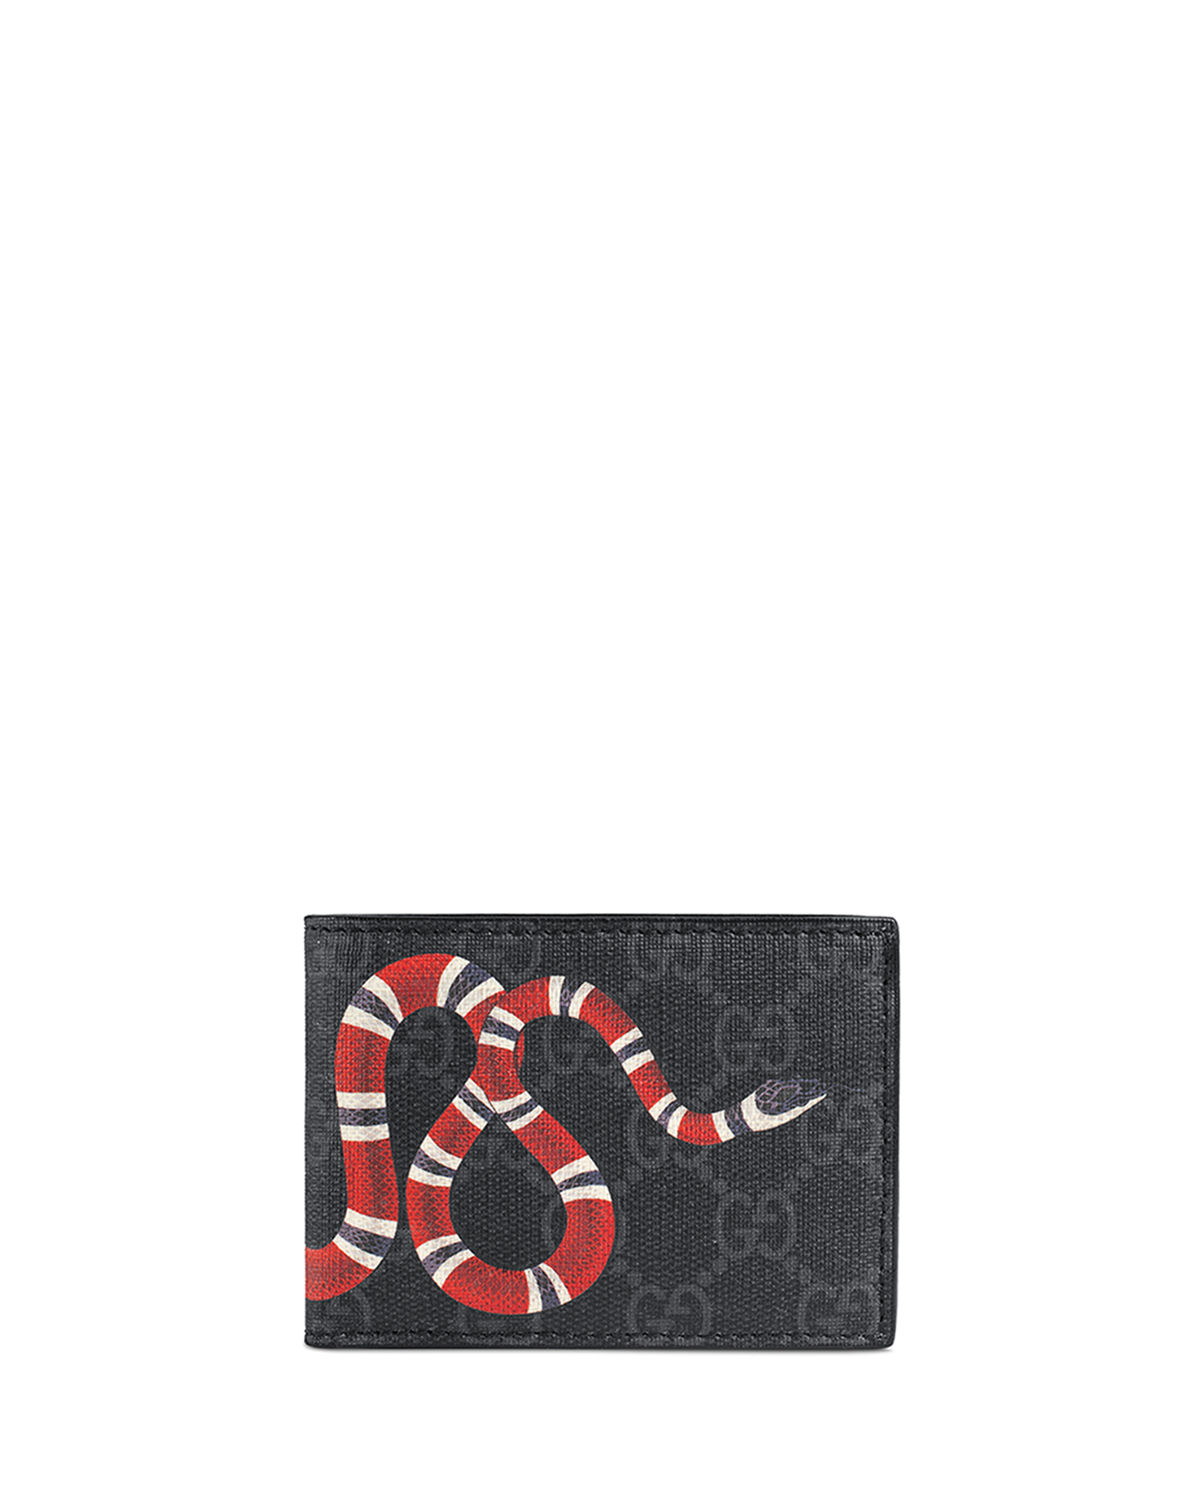 cfc7c435c40 Gucci Bestiary Snake-Print GG Supreme Wallet